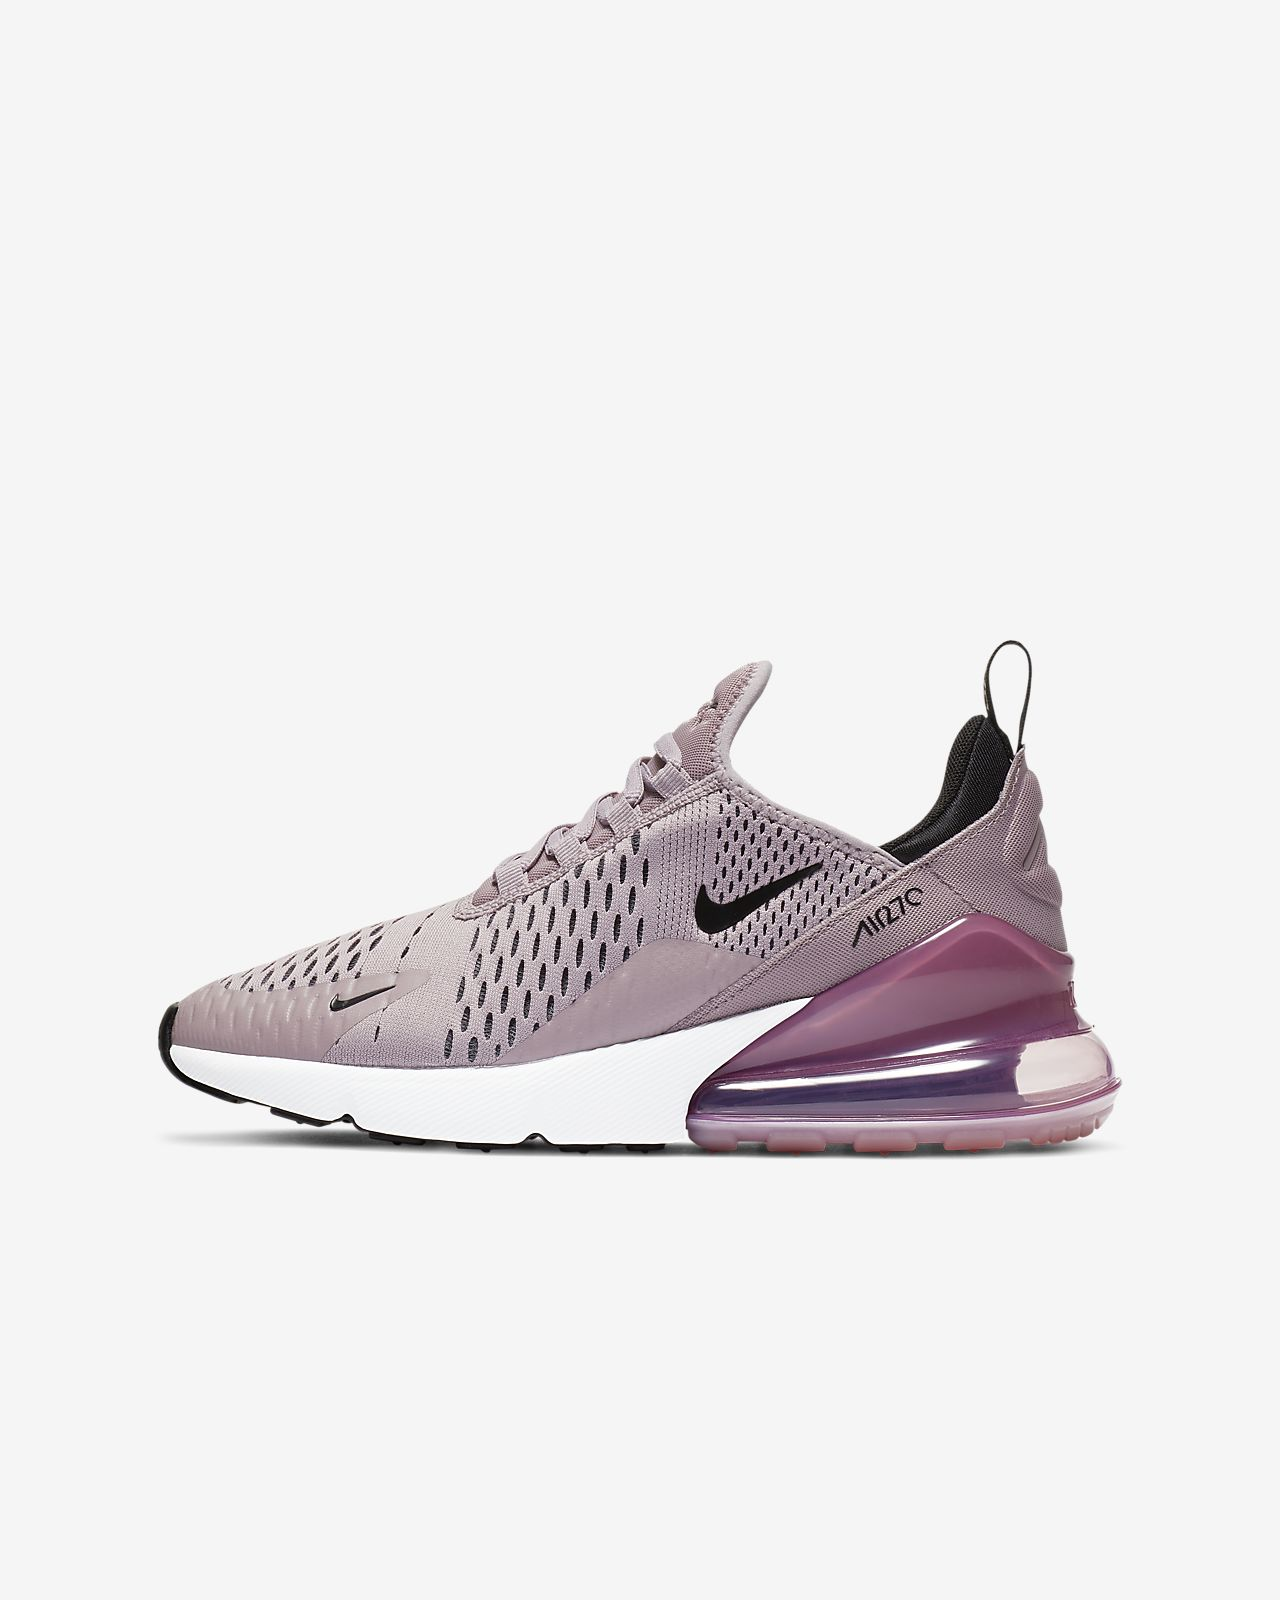 the latest c08f9 ba634 cheapest nike air max 270 purple norway 72cb6 17d73